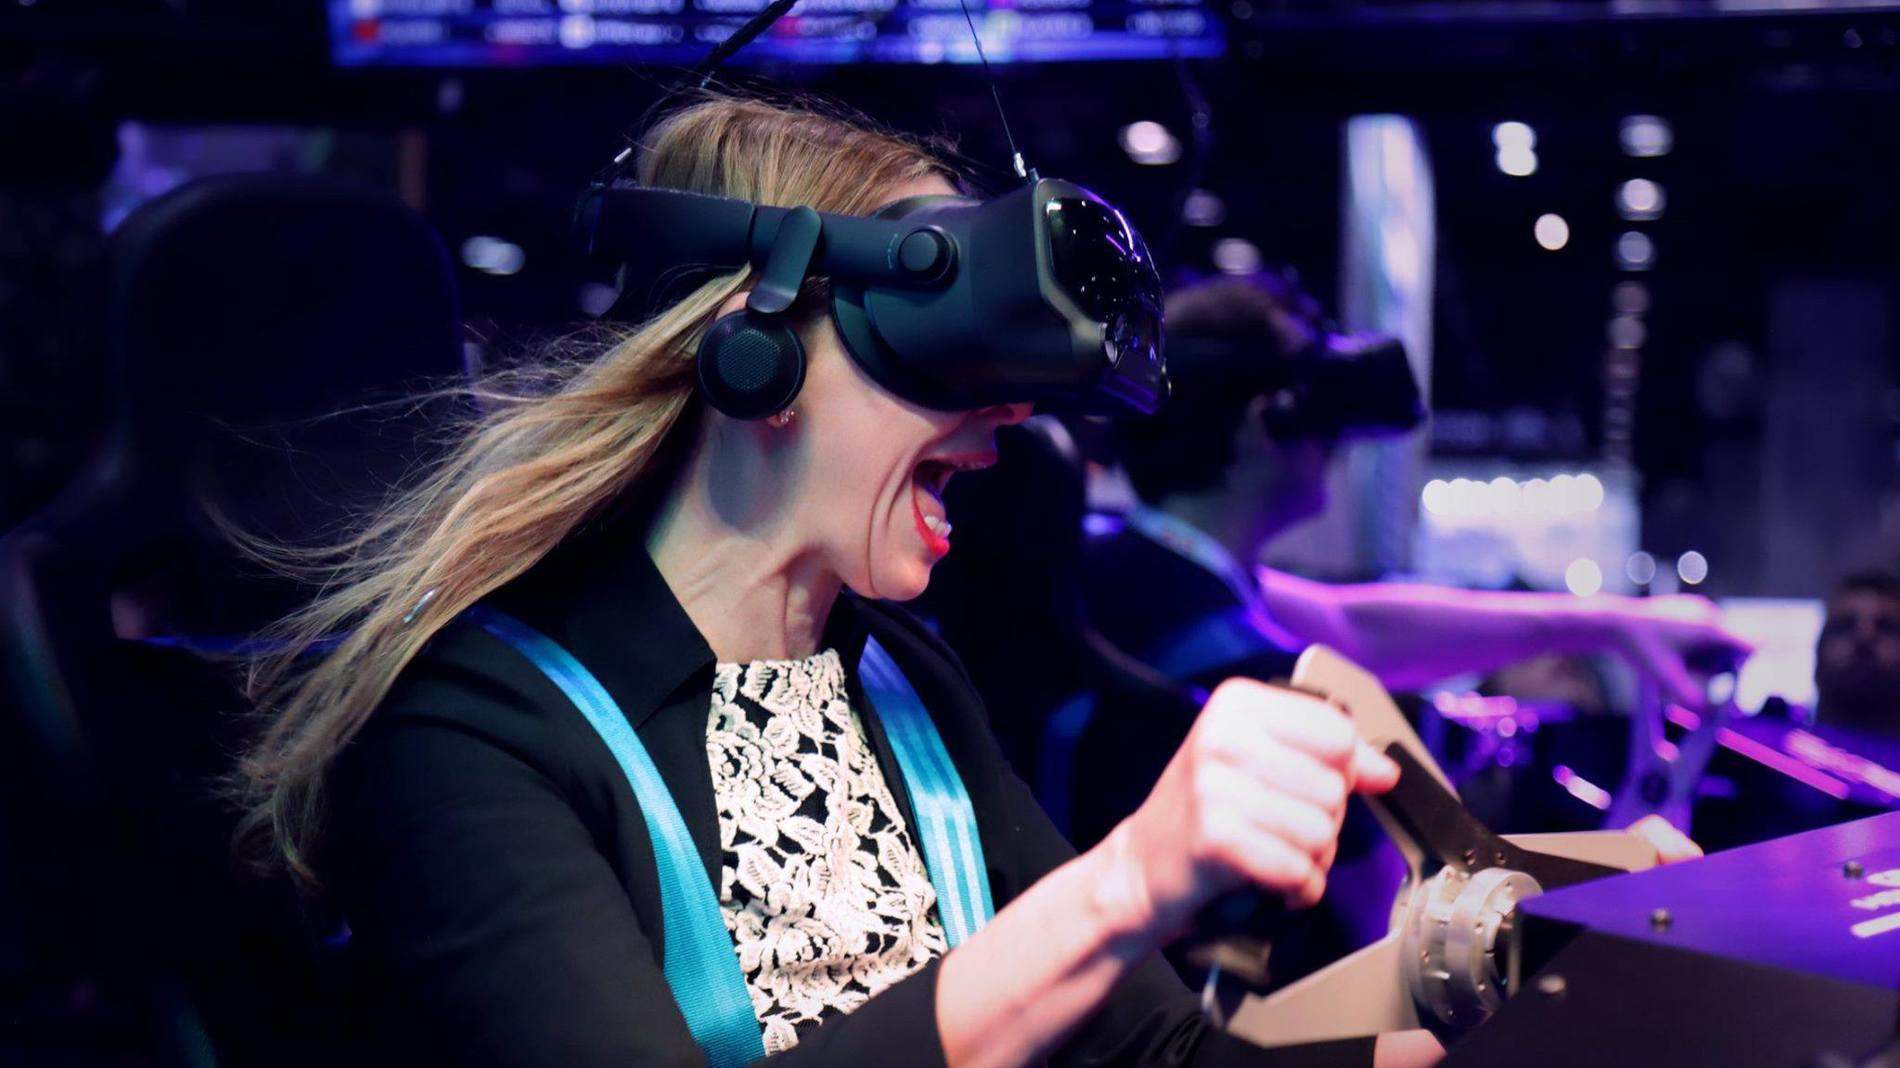 The Ultimate Virtual Reality Motion Simulator!